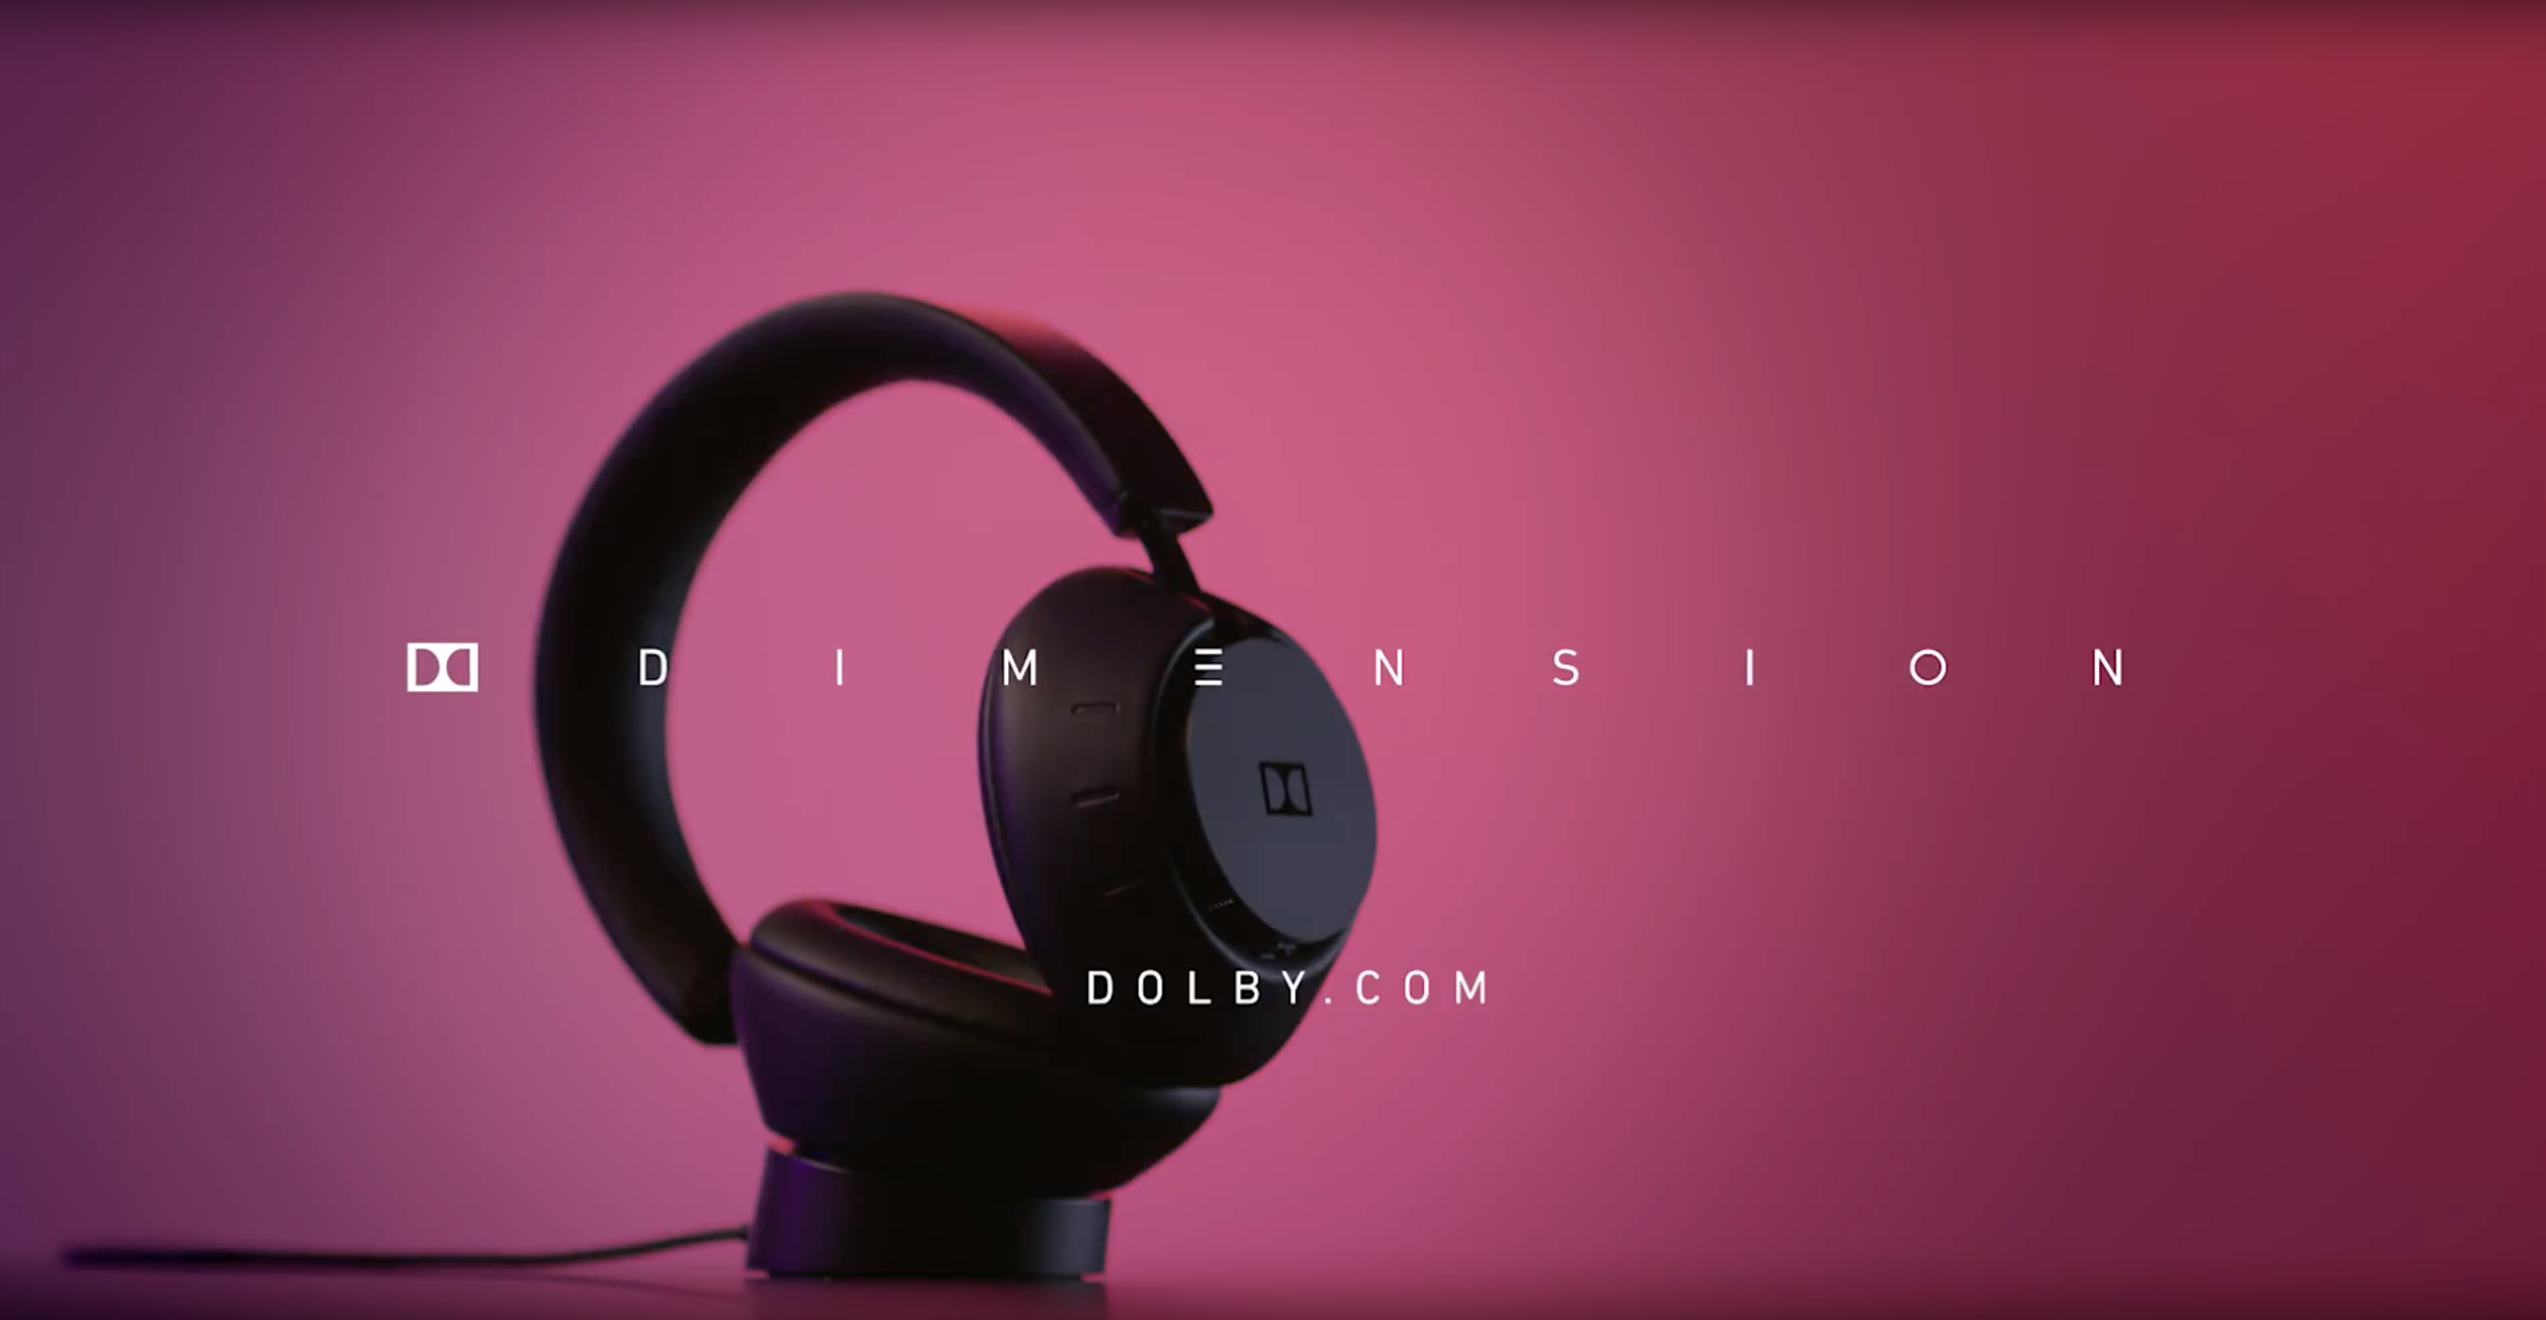 Dolby - Dimension